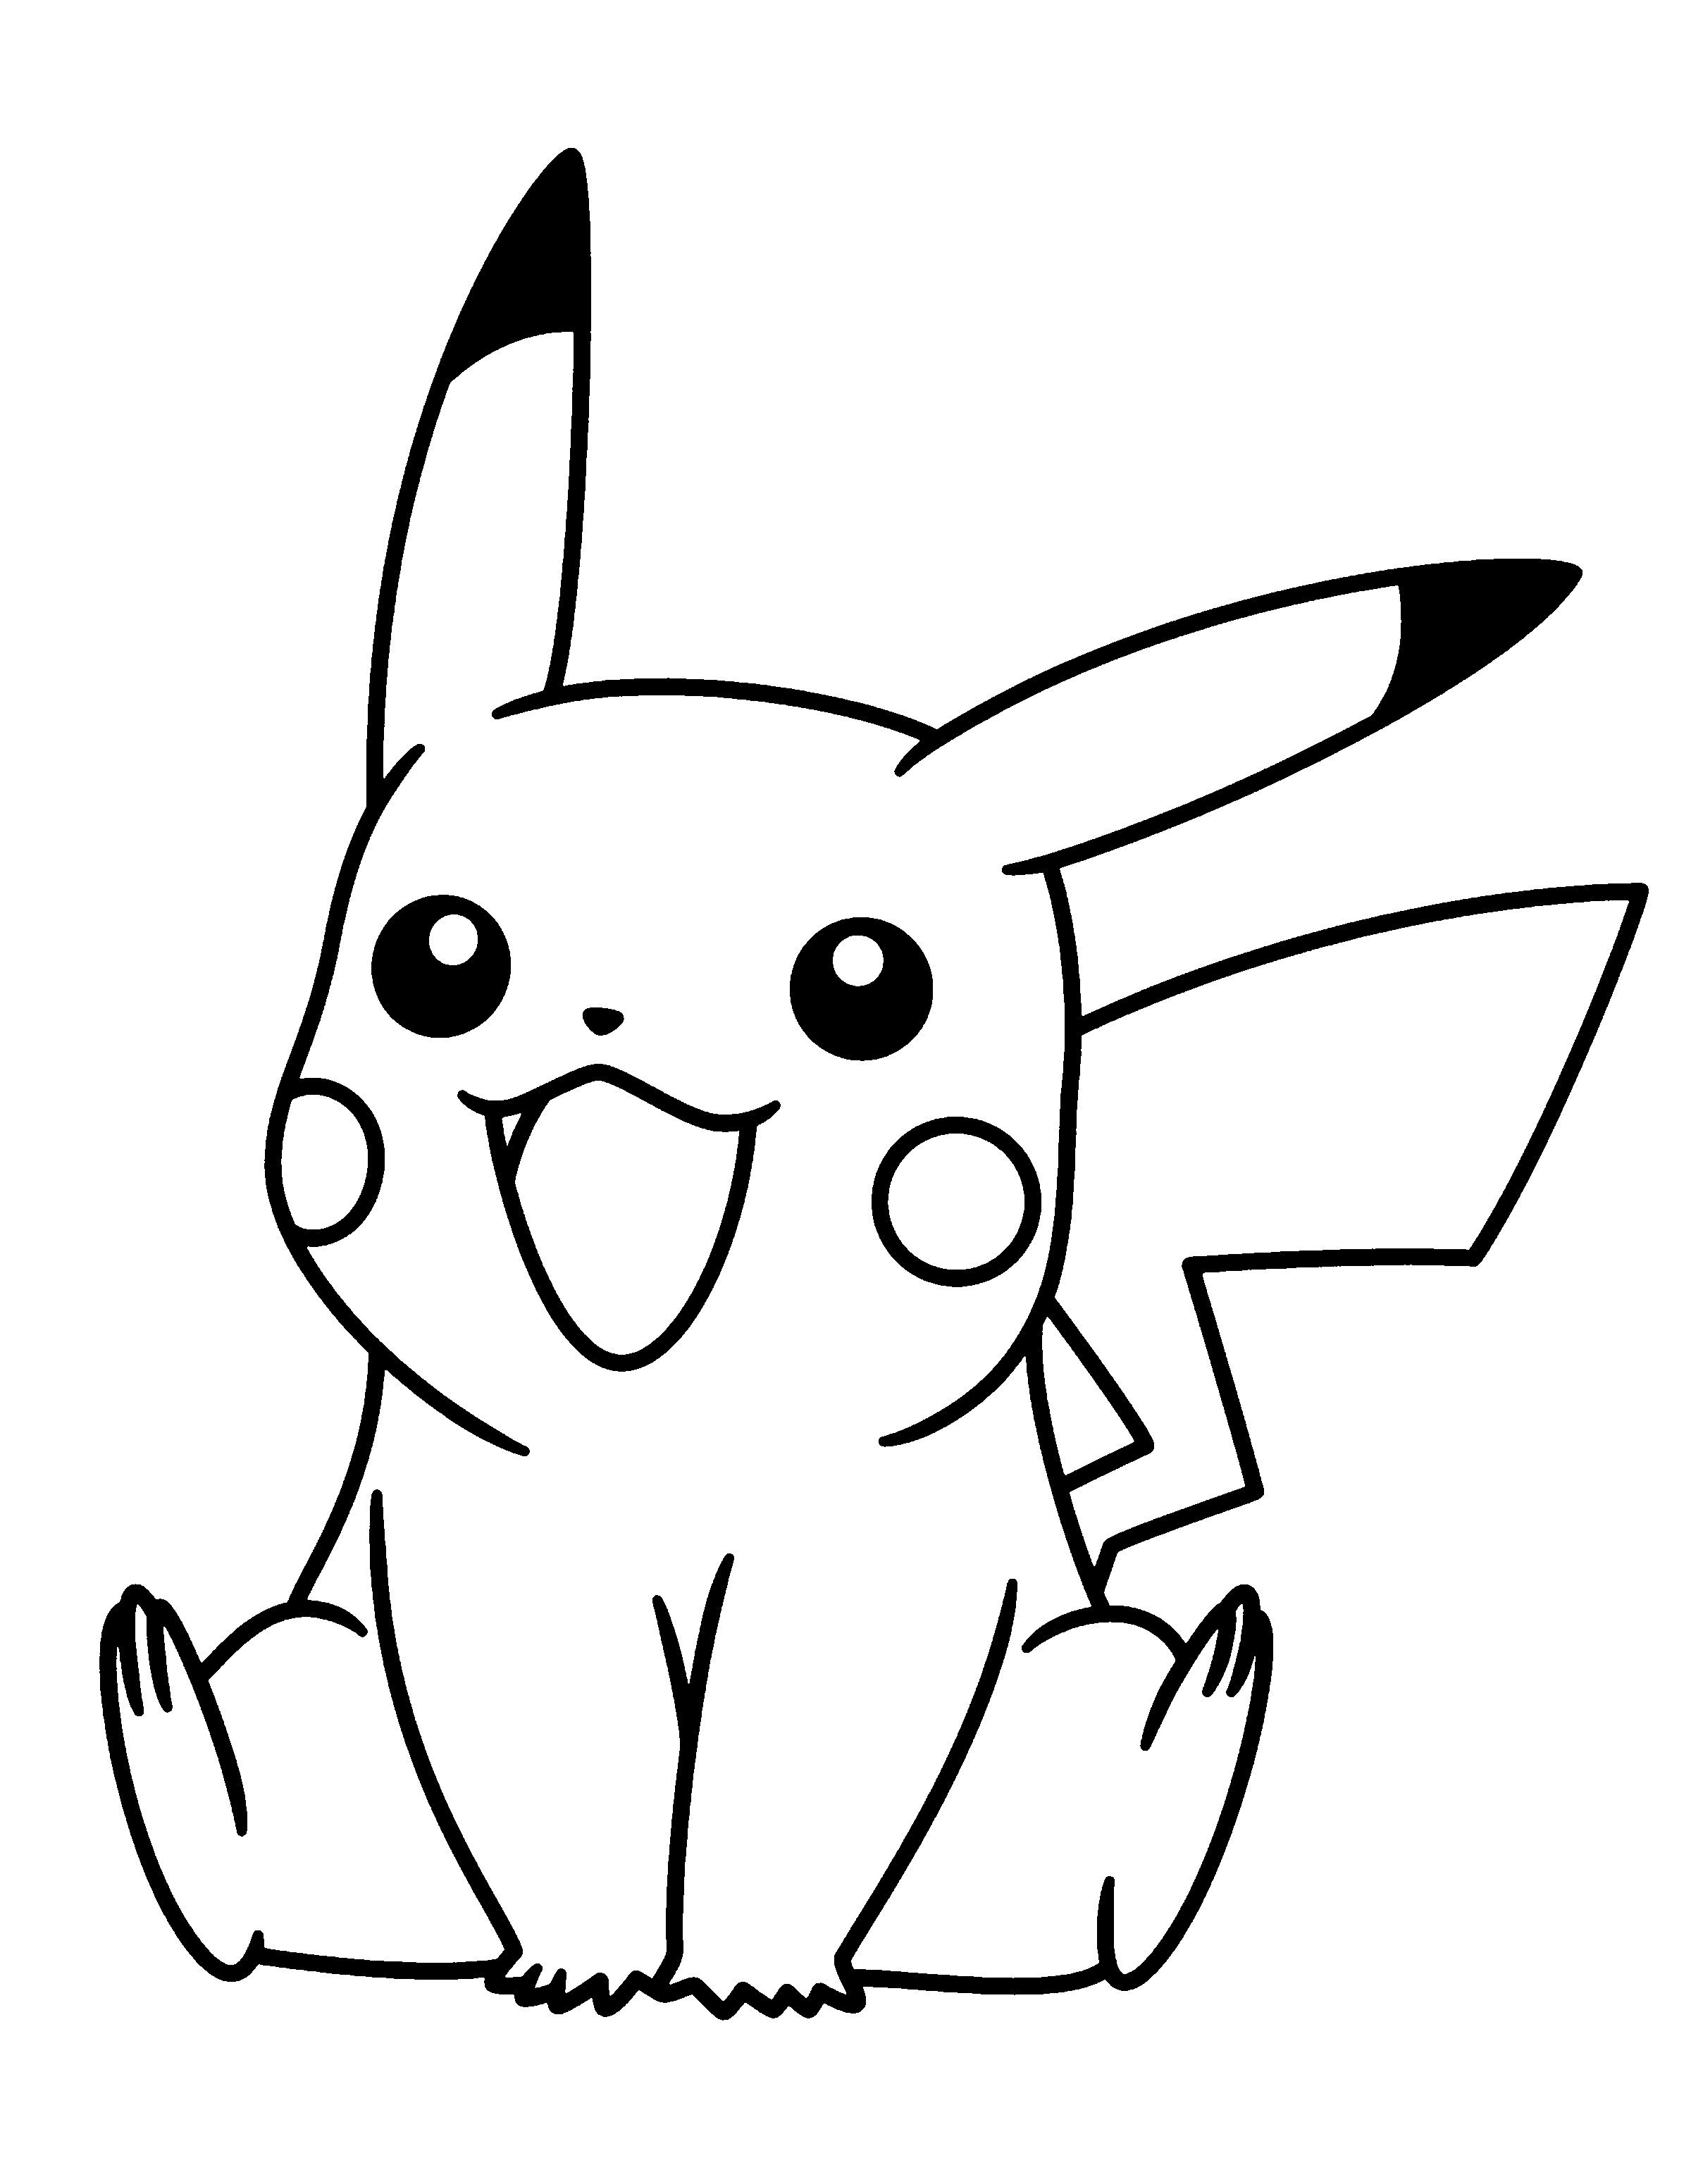 Pikachu Drawing Coloring Pages Pokemon coloring, Pikachu